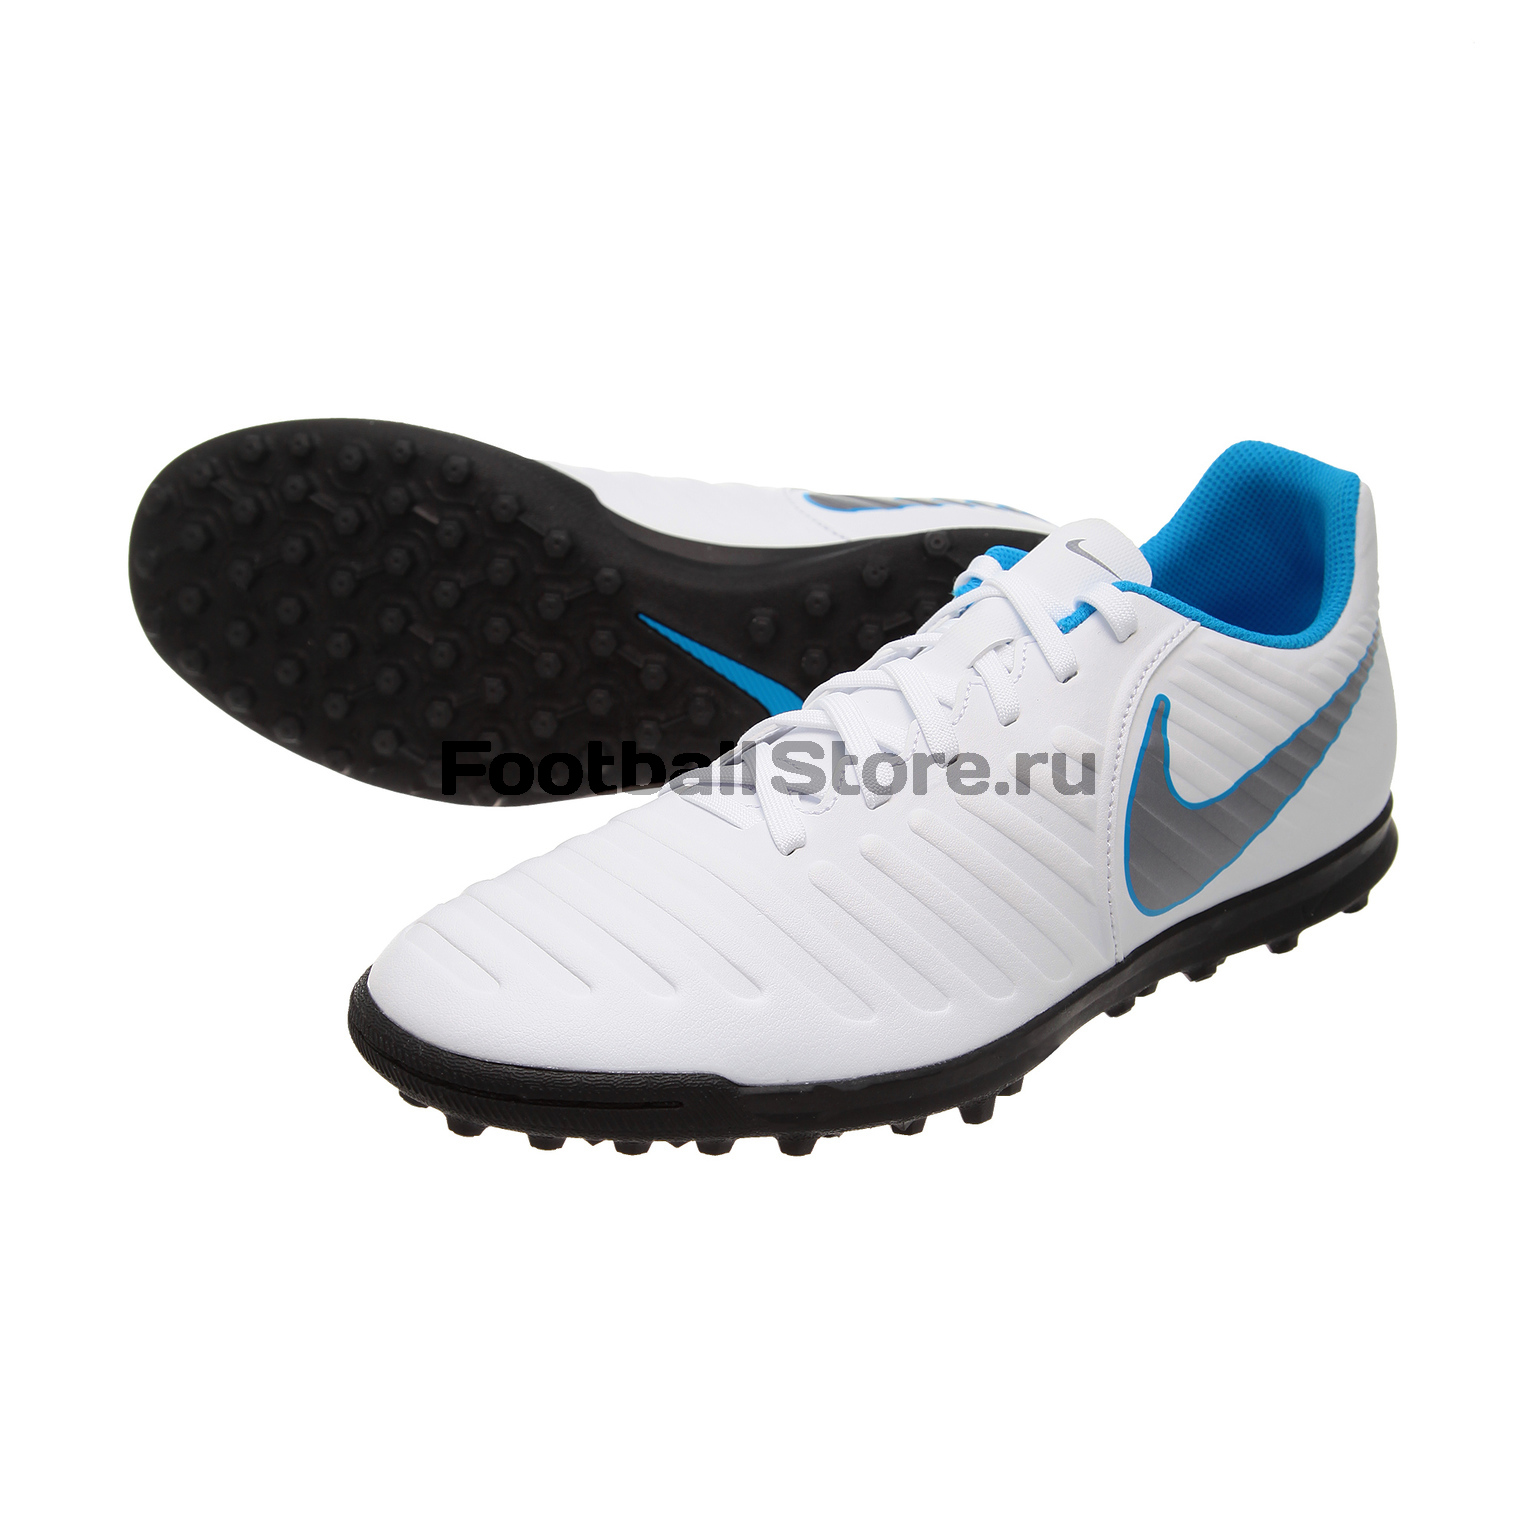 Шиповки Nike LegendX 7 Club TF AH7248-107 шиповки nike legendx 7 club tf ah7248 107